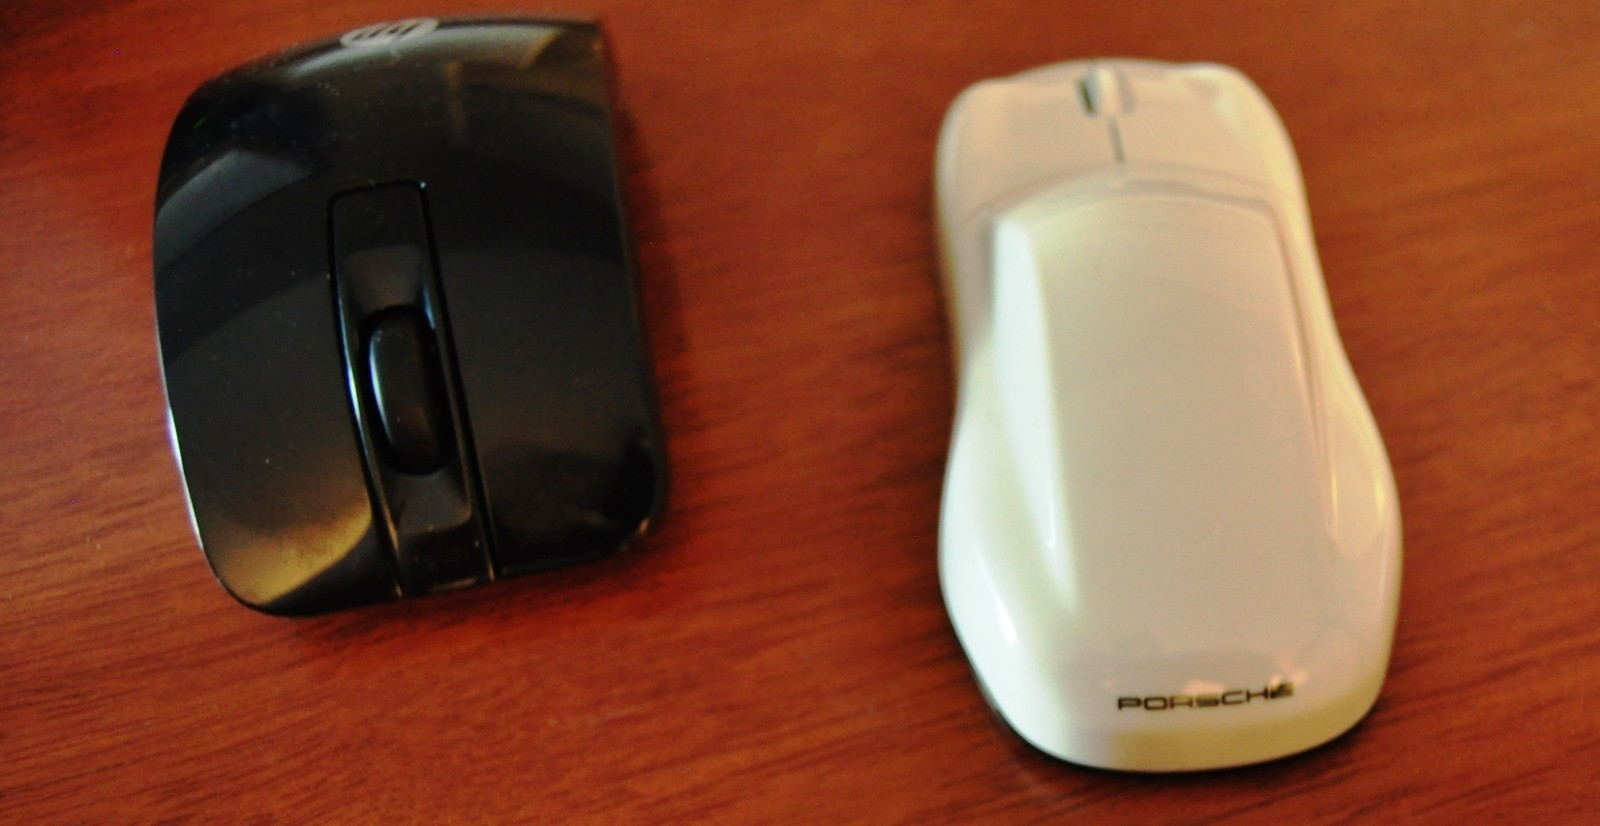 CarRevsDaily - Porsche Design Computer Mouse - Gadget Review 34